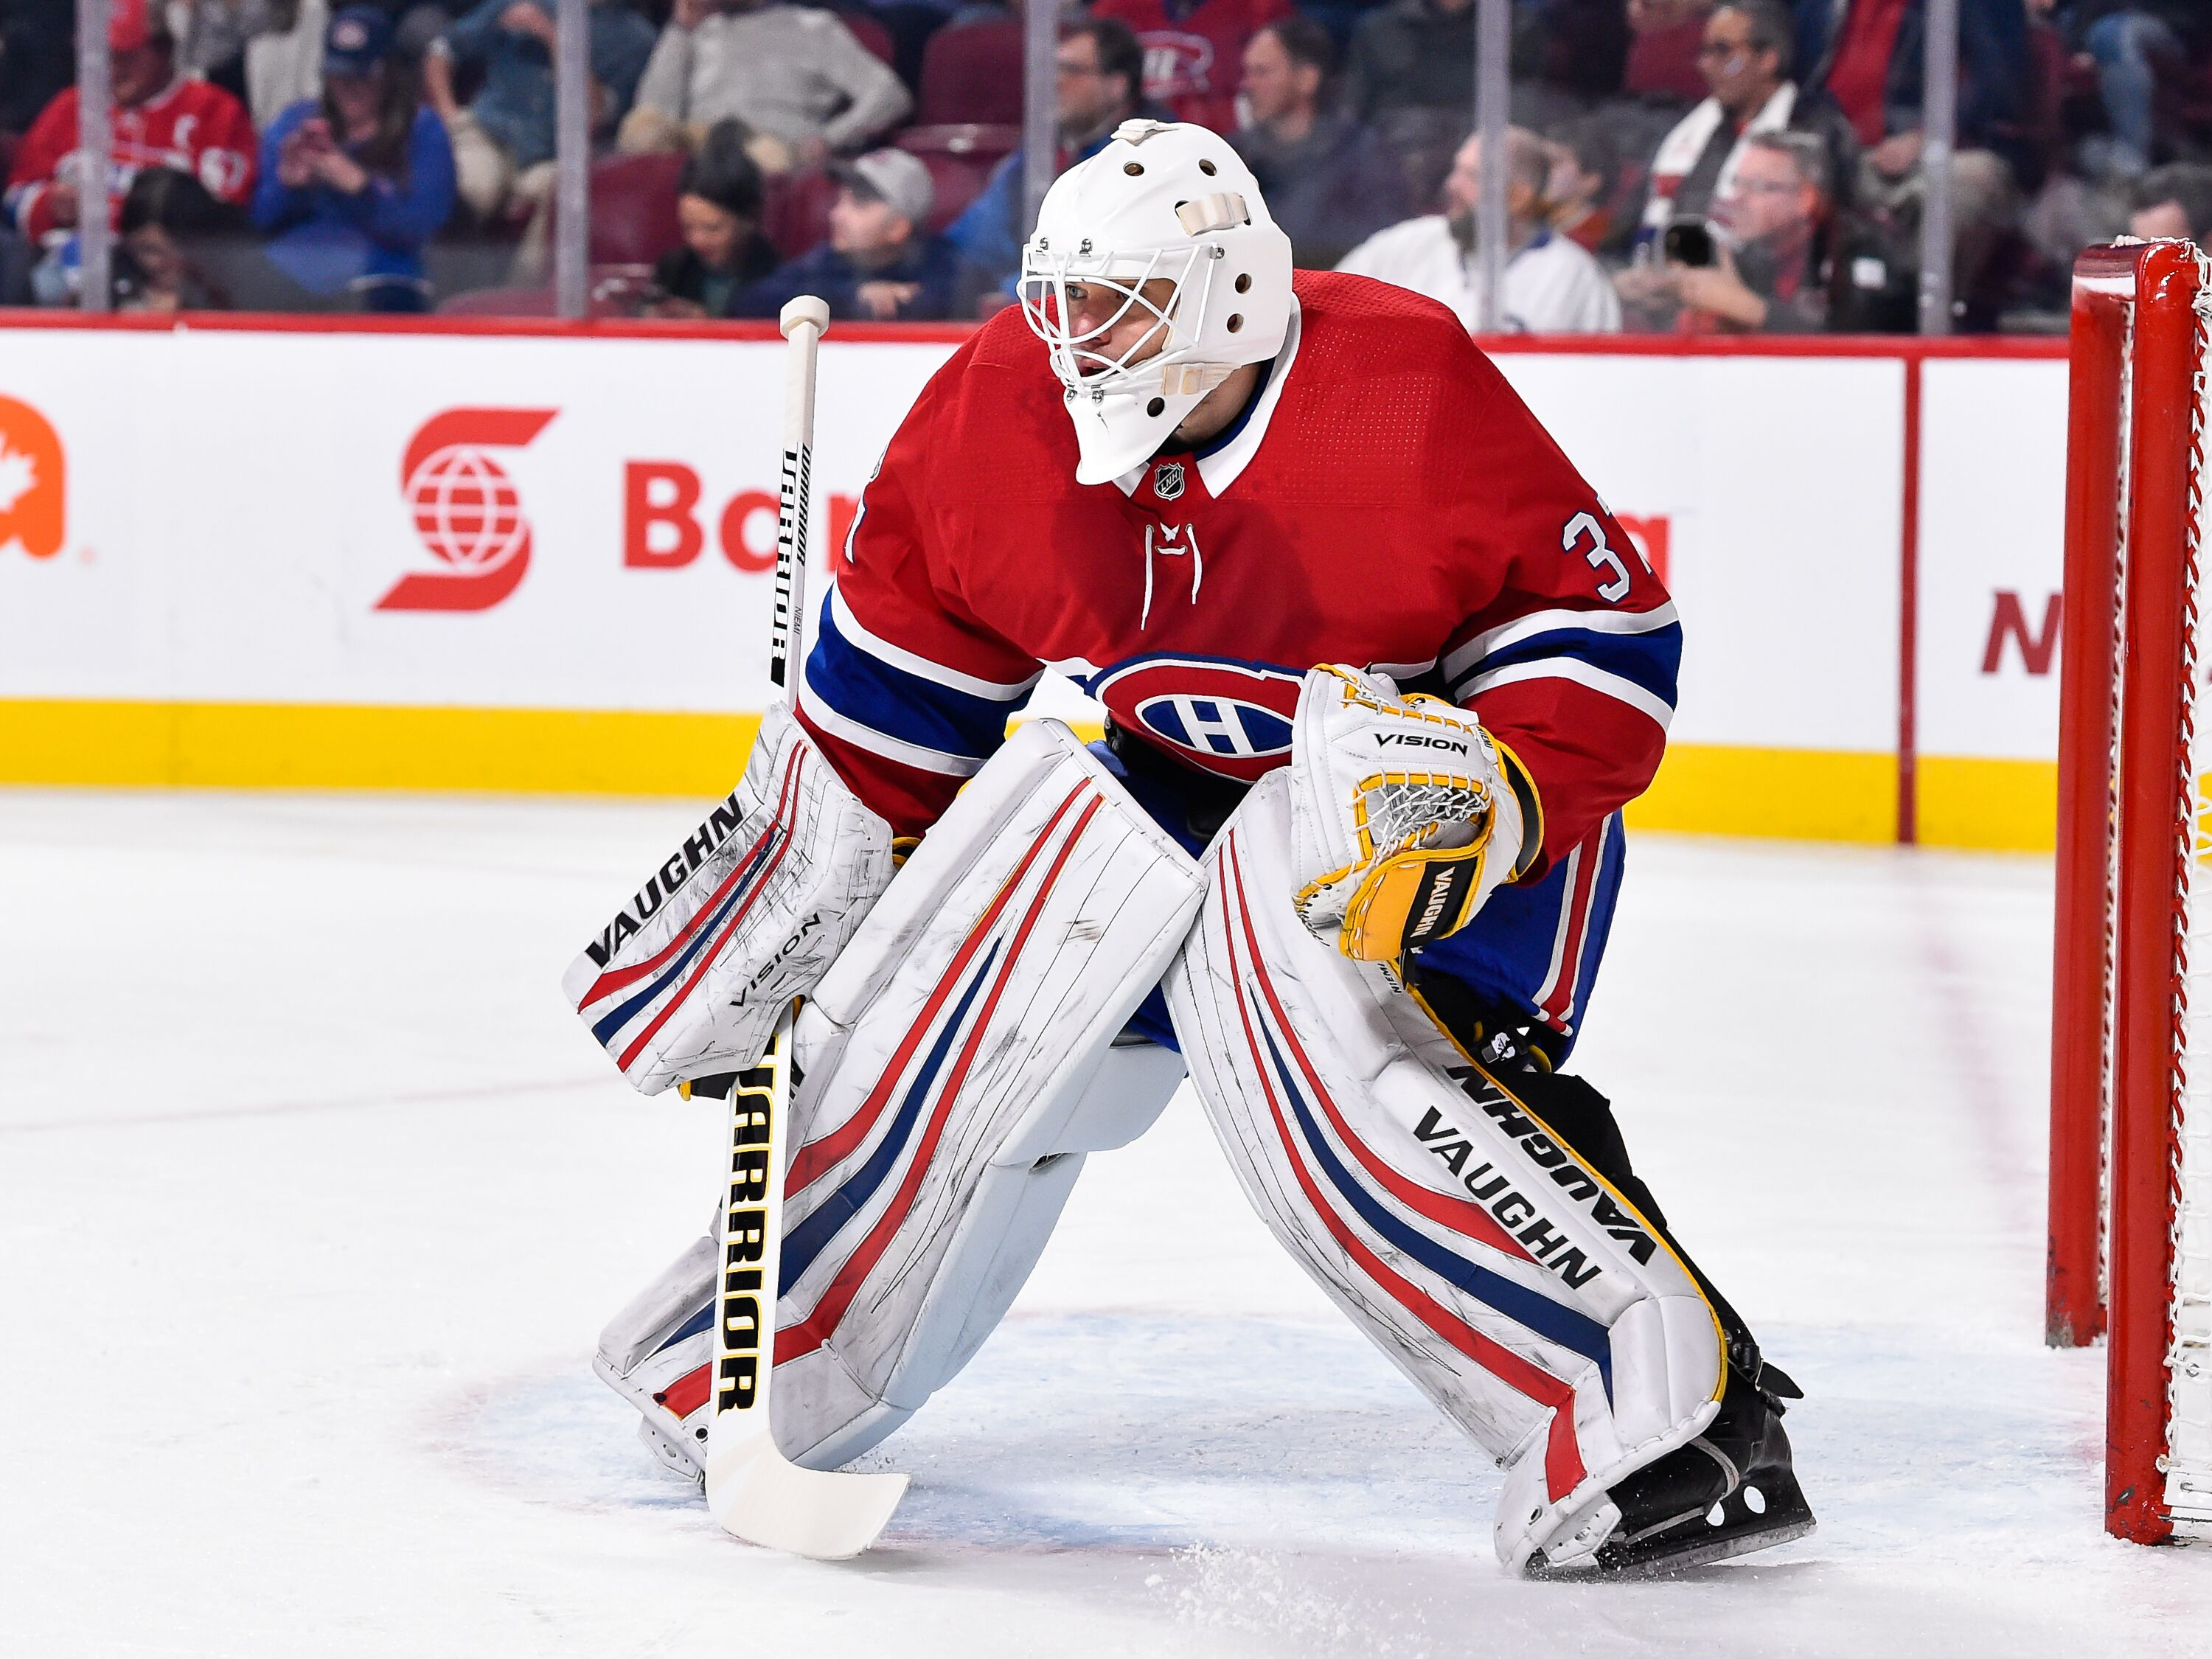 Image result for Antti niemi